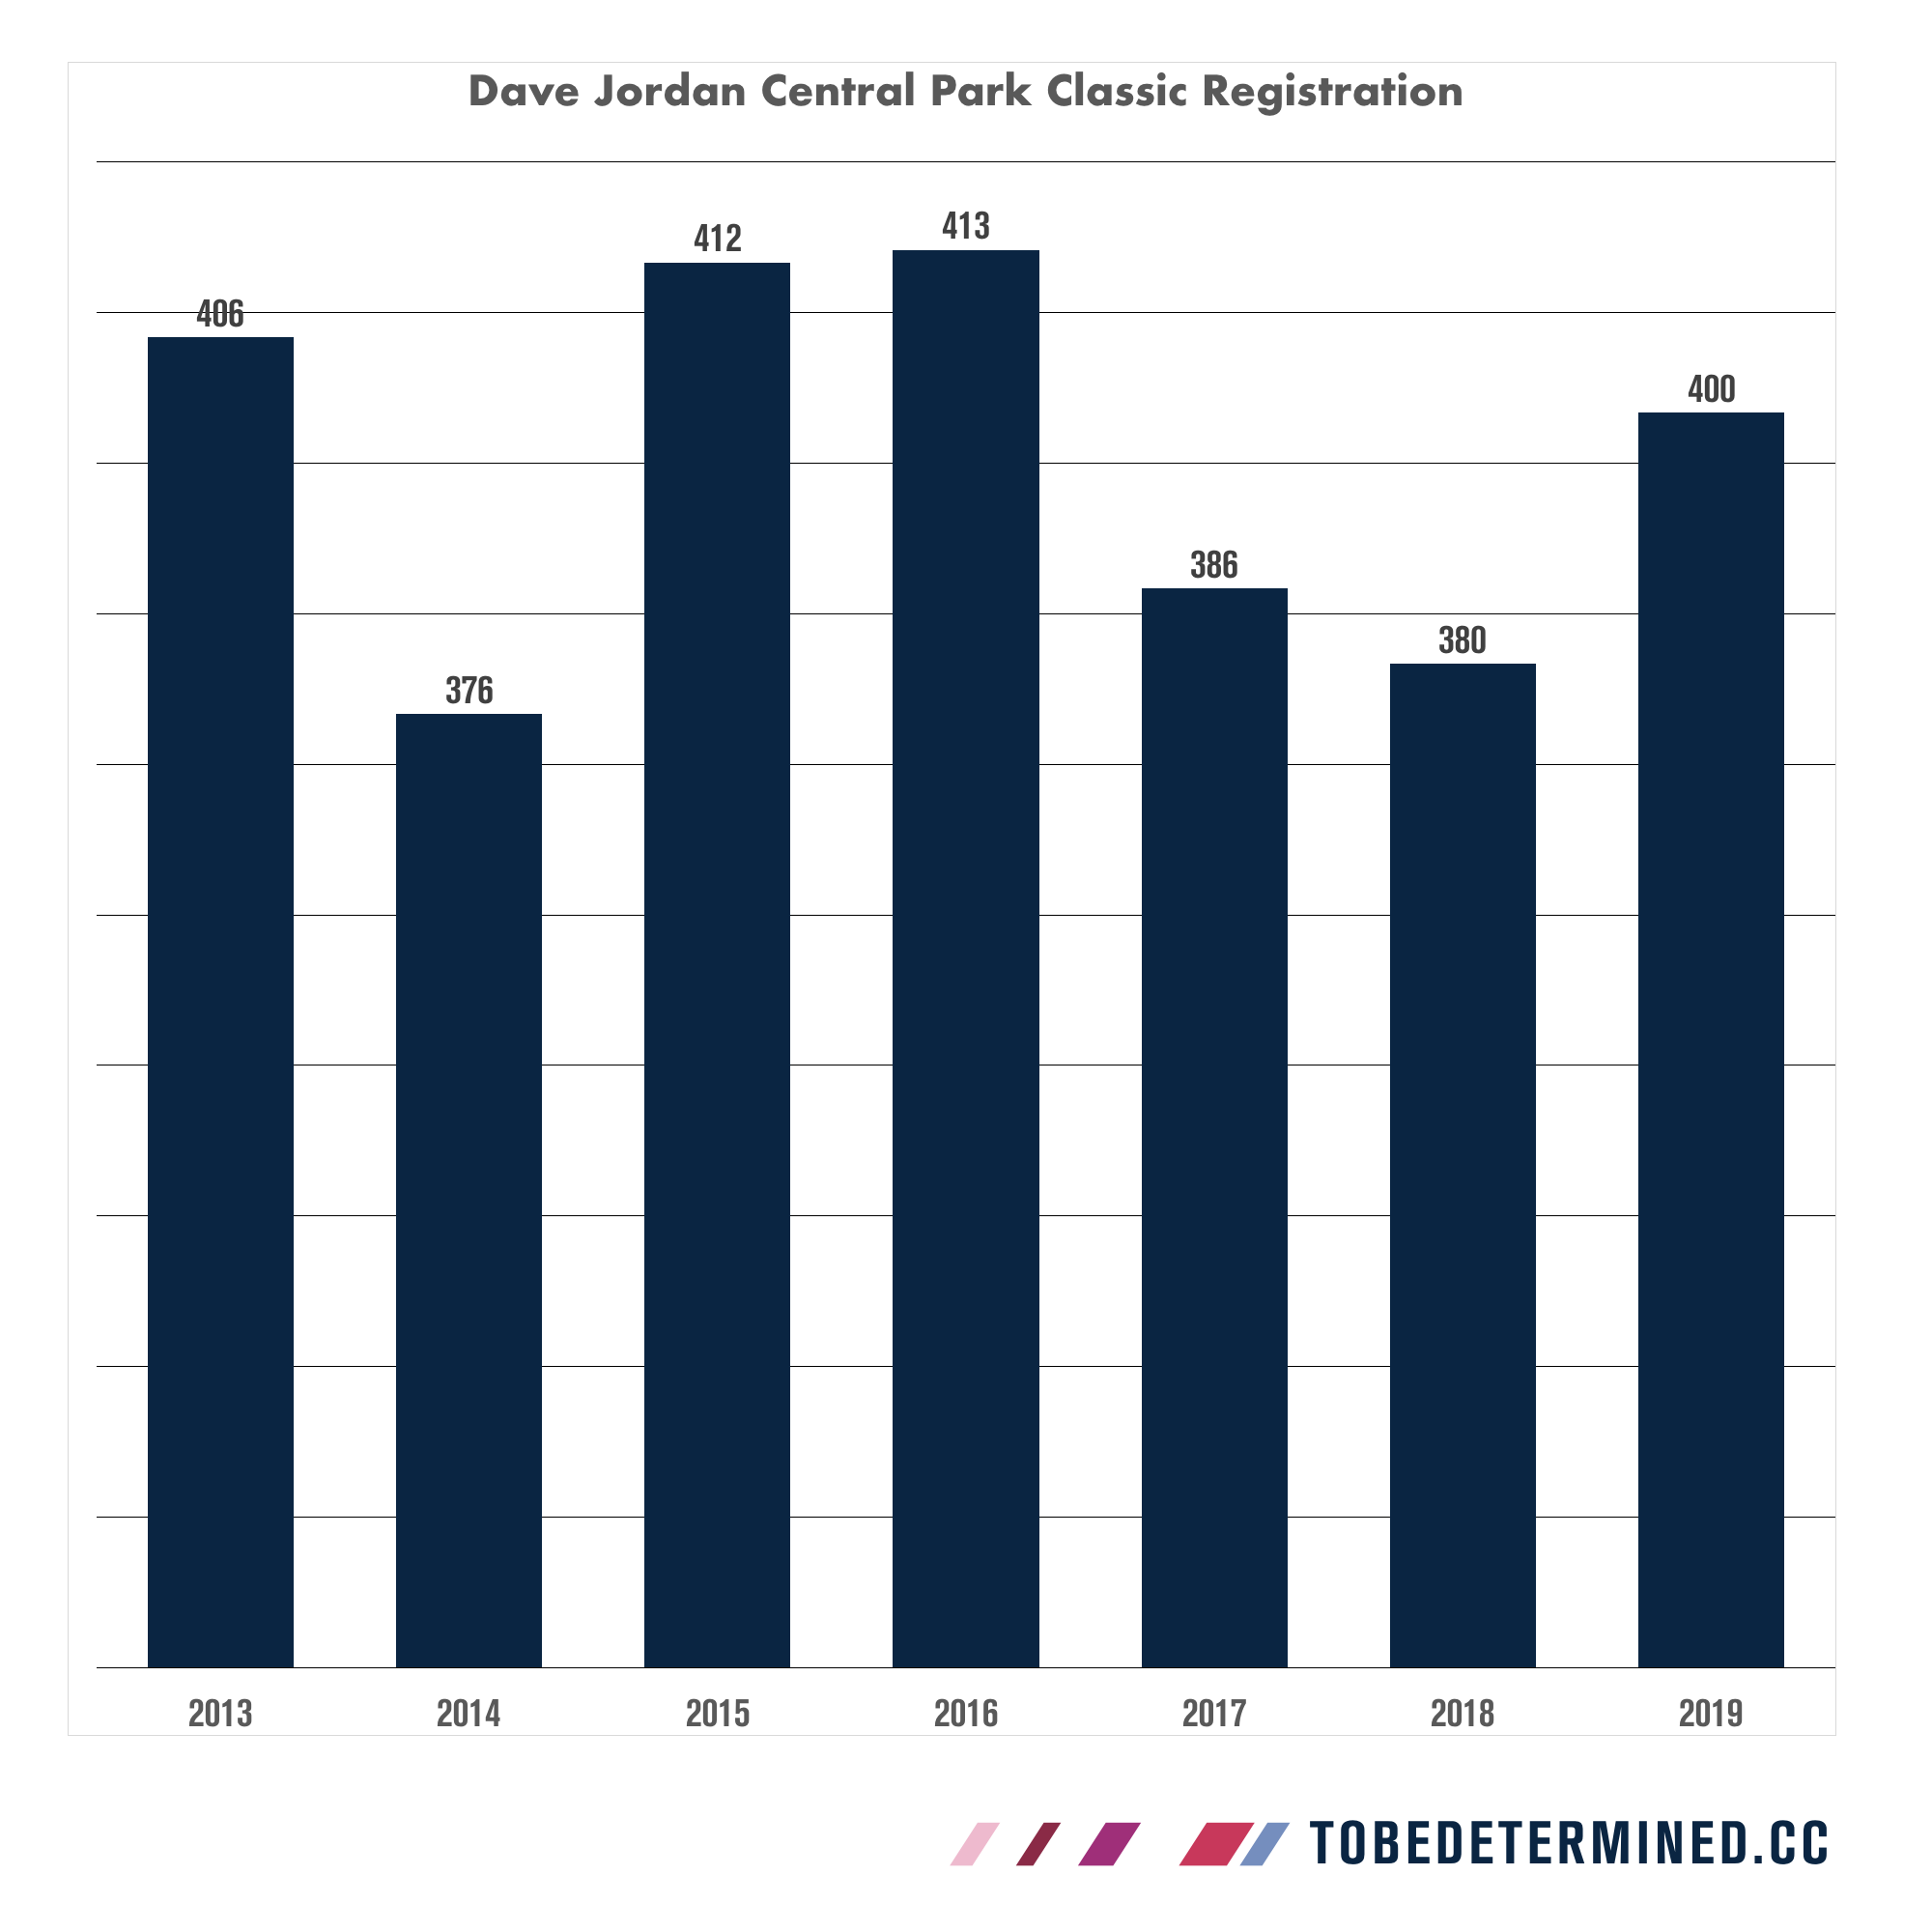 As of Thursday morning the 7th Annual CRCA Dave Jordan Central Park Classic had 400 registrants, easily surpassing the last two years of races. If wait lists were excluded from the 2015/2016 editions, this would be the largest edition of the race since year 2013.